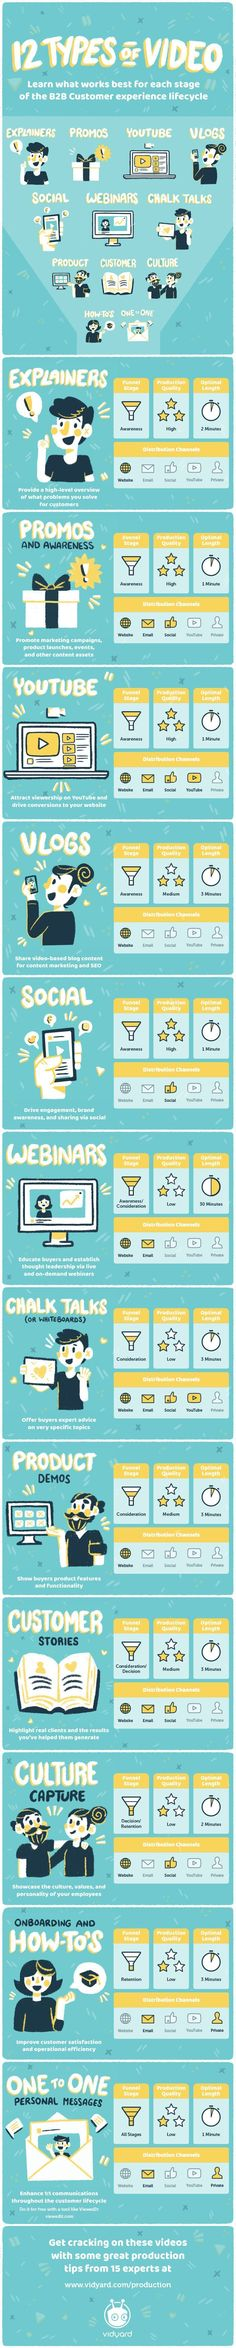 12 Types of Video That Can Supercharge Your Online Marketing Strategy - Red Website Design